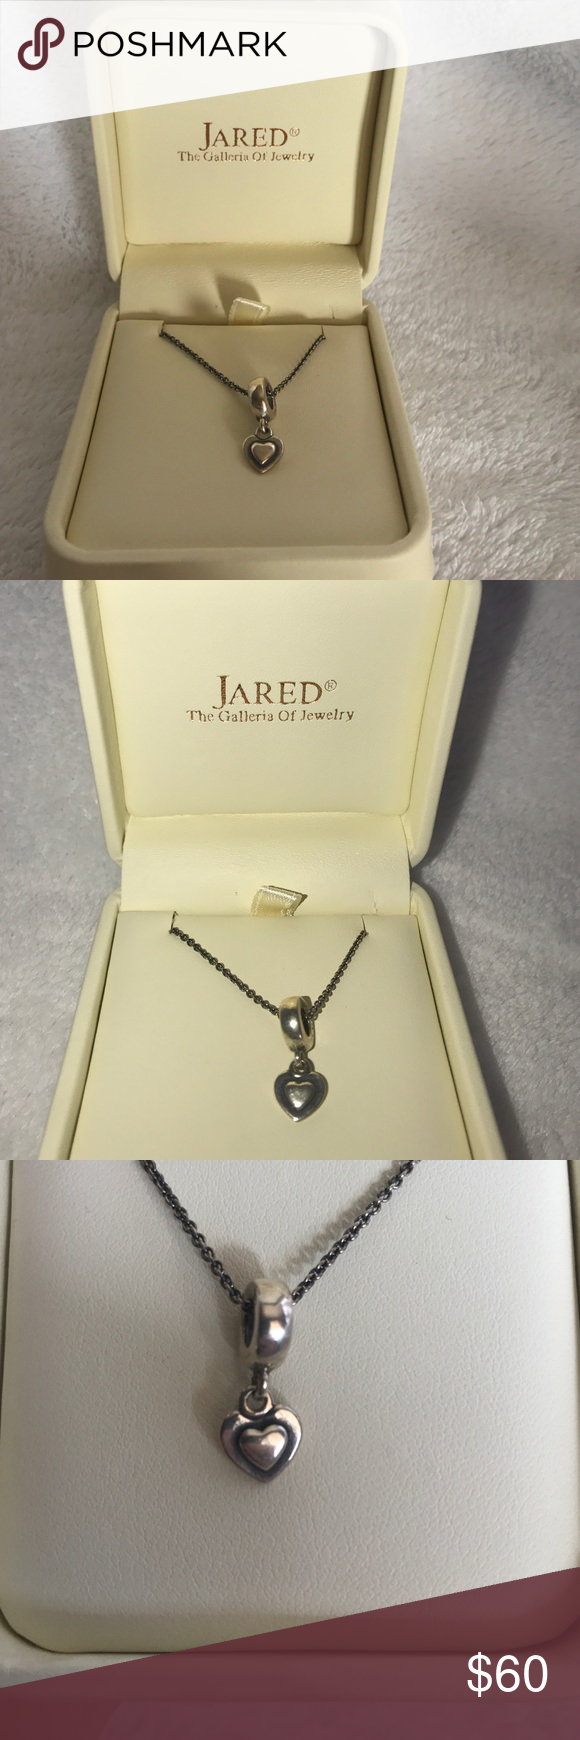 new in box Jared Necklace Heart charm Jewlery and Box